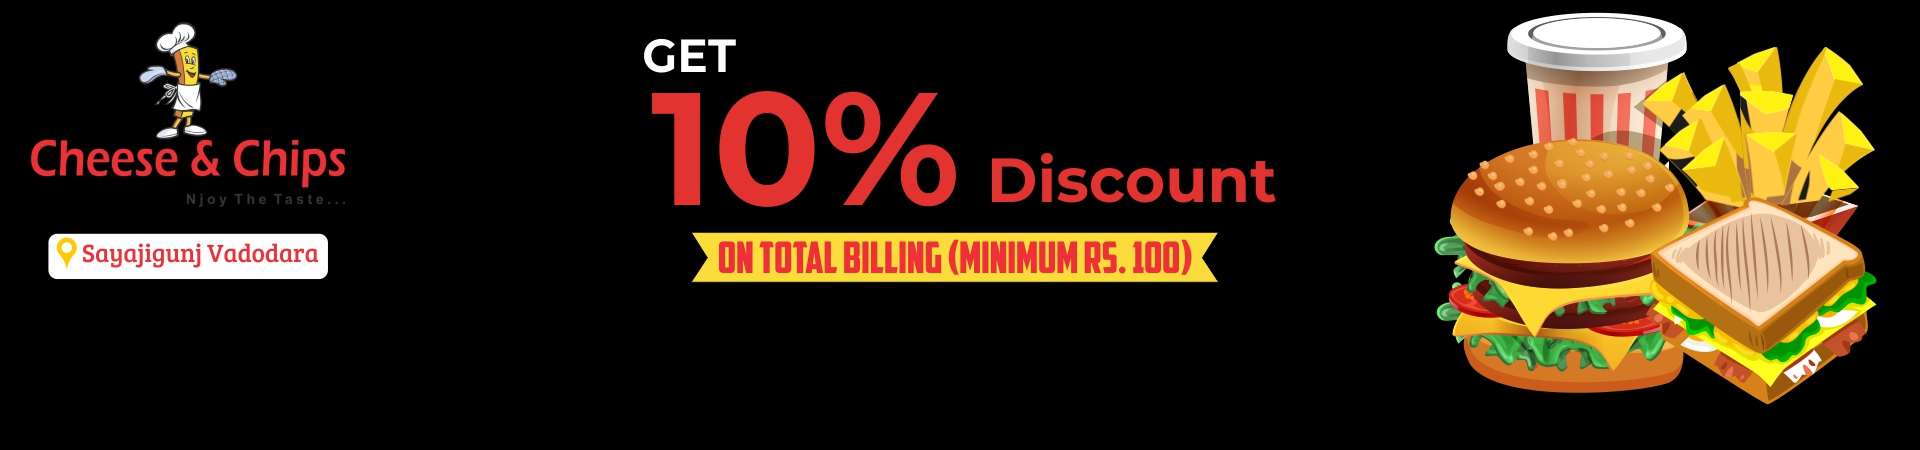 Get 10% Discount on Total Billing